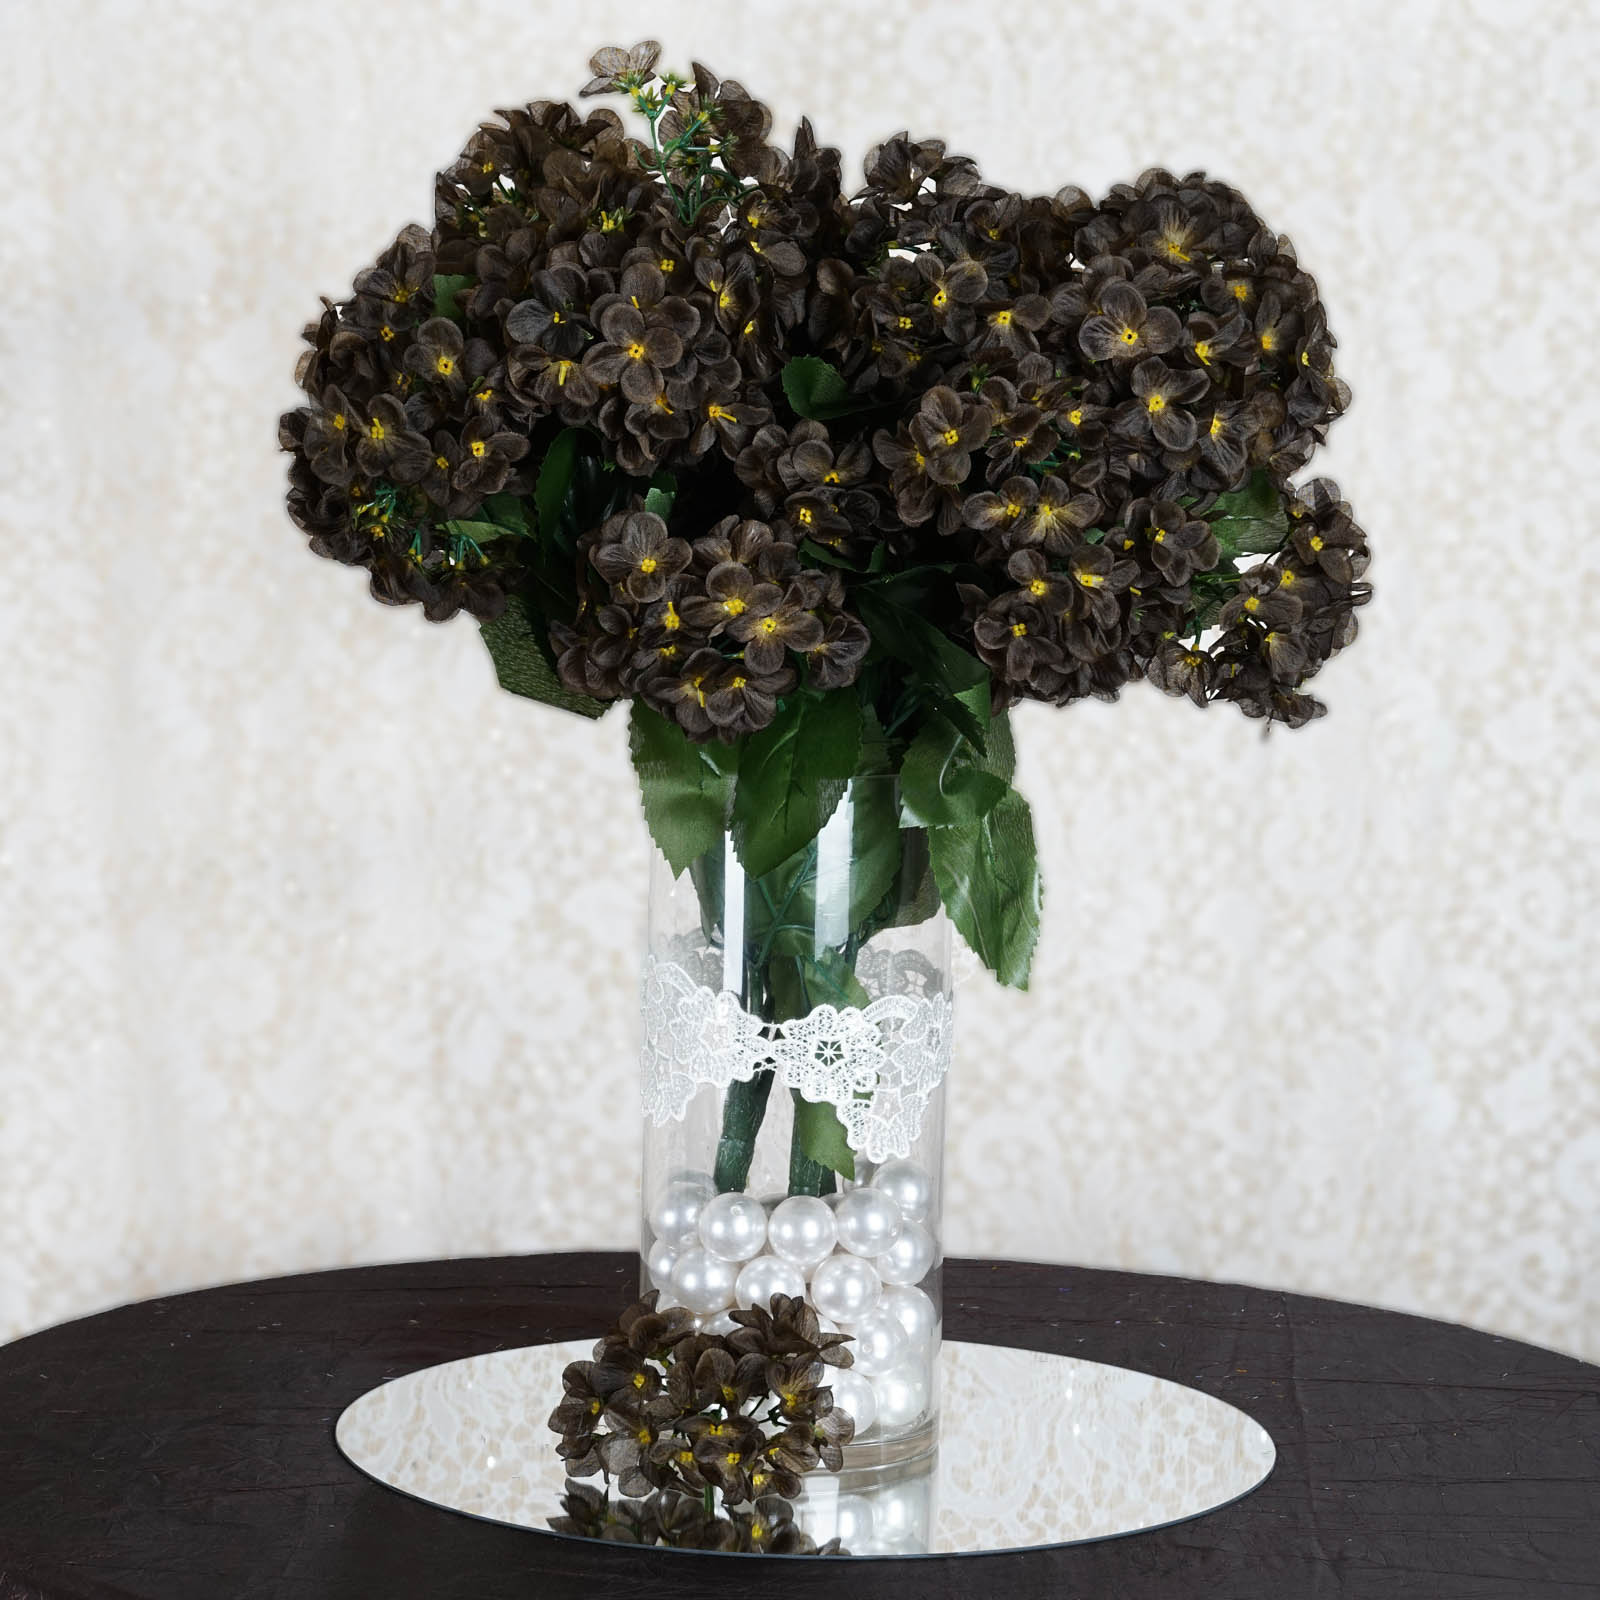 56 silk hydrangea flowers wedding party home bouquets centerpieces arrangements. Black Bedroom Furniture Sets. Home Design Ideas